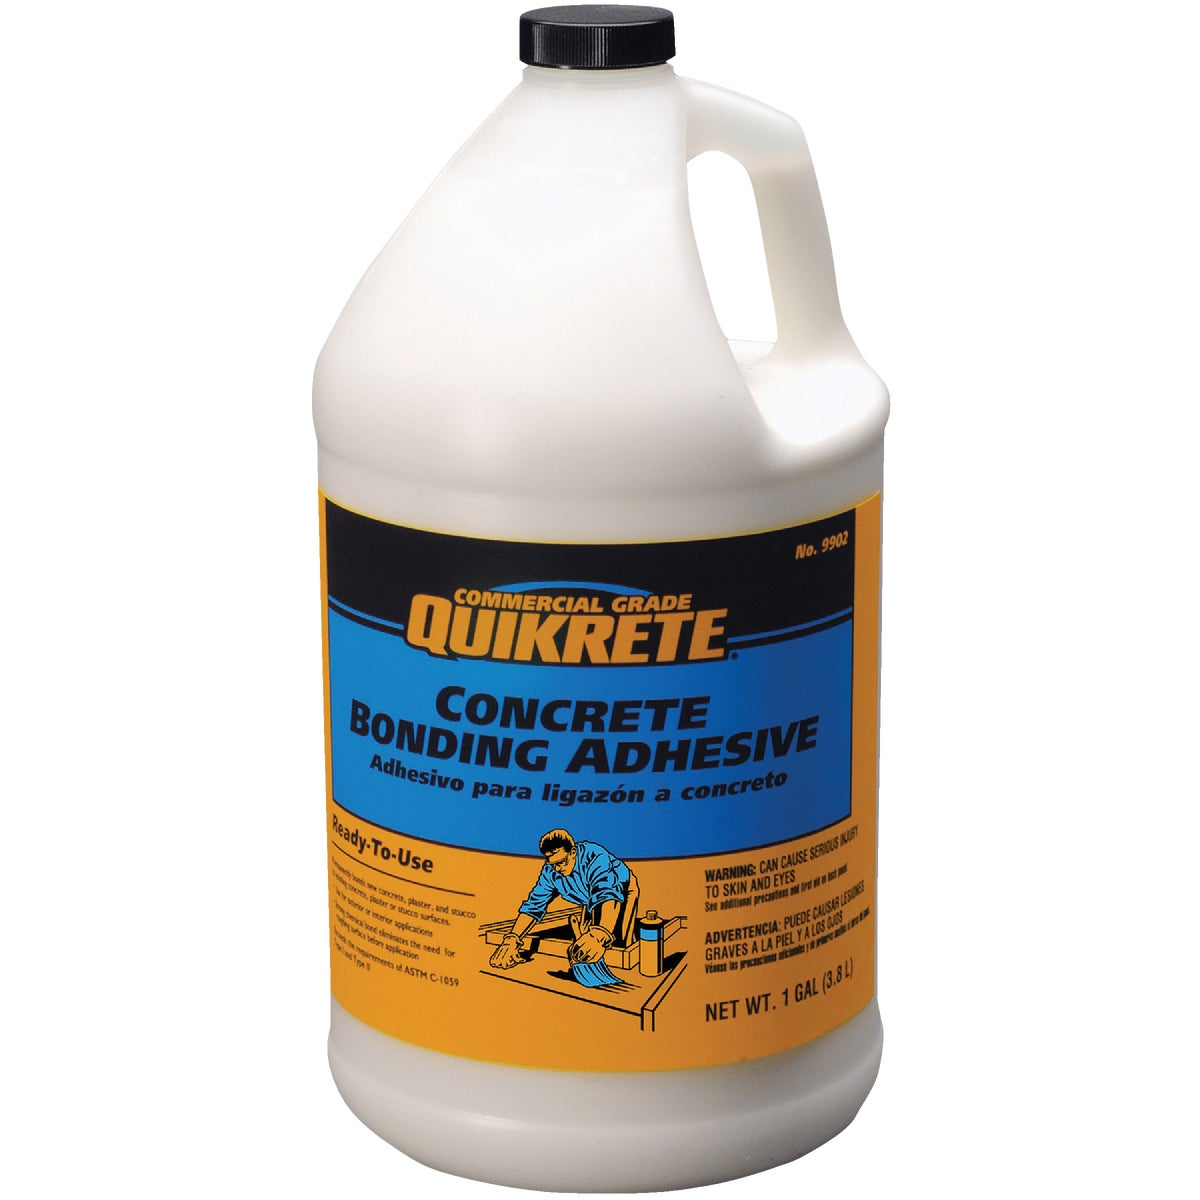 GAL CNCRT BONDG ADHESIVE - 990200 by Quikrete Co